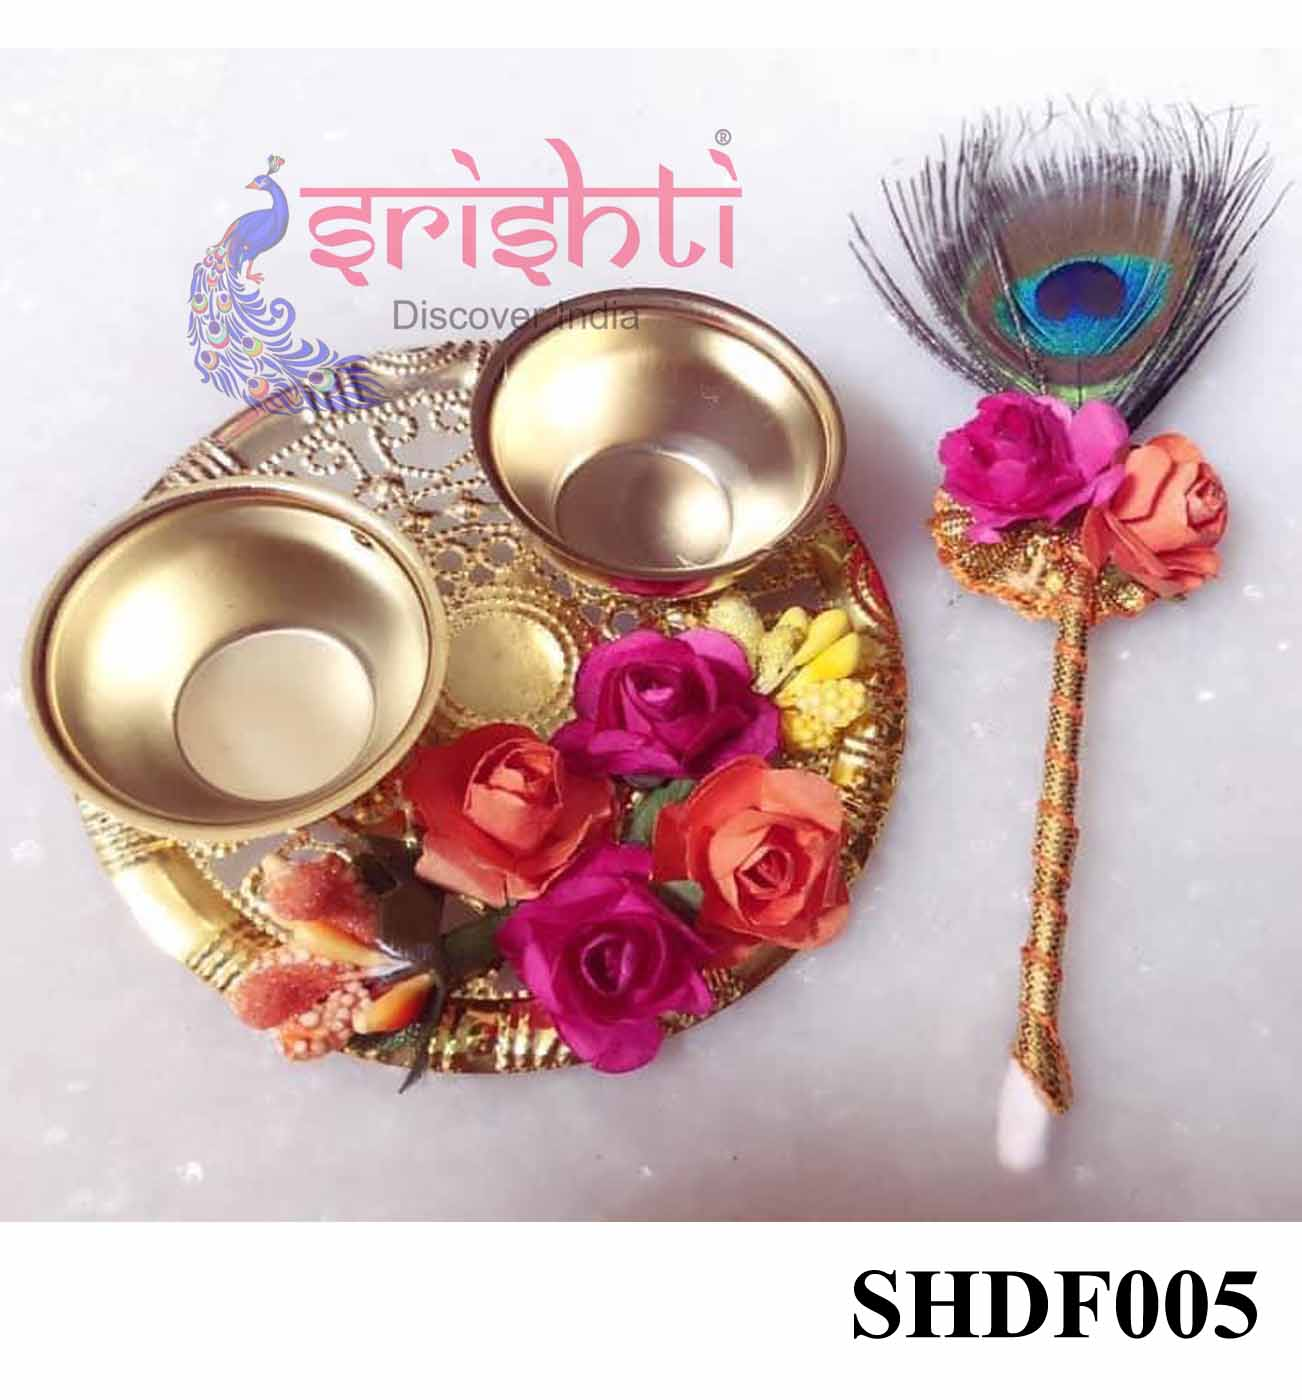 SHDP-Kumkum Container-Two Cup Set